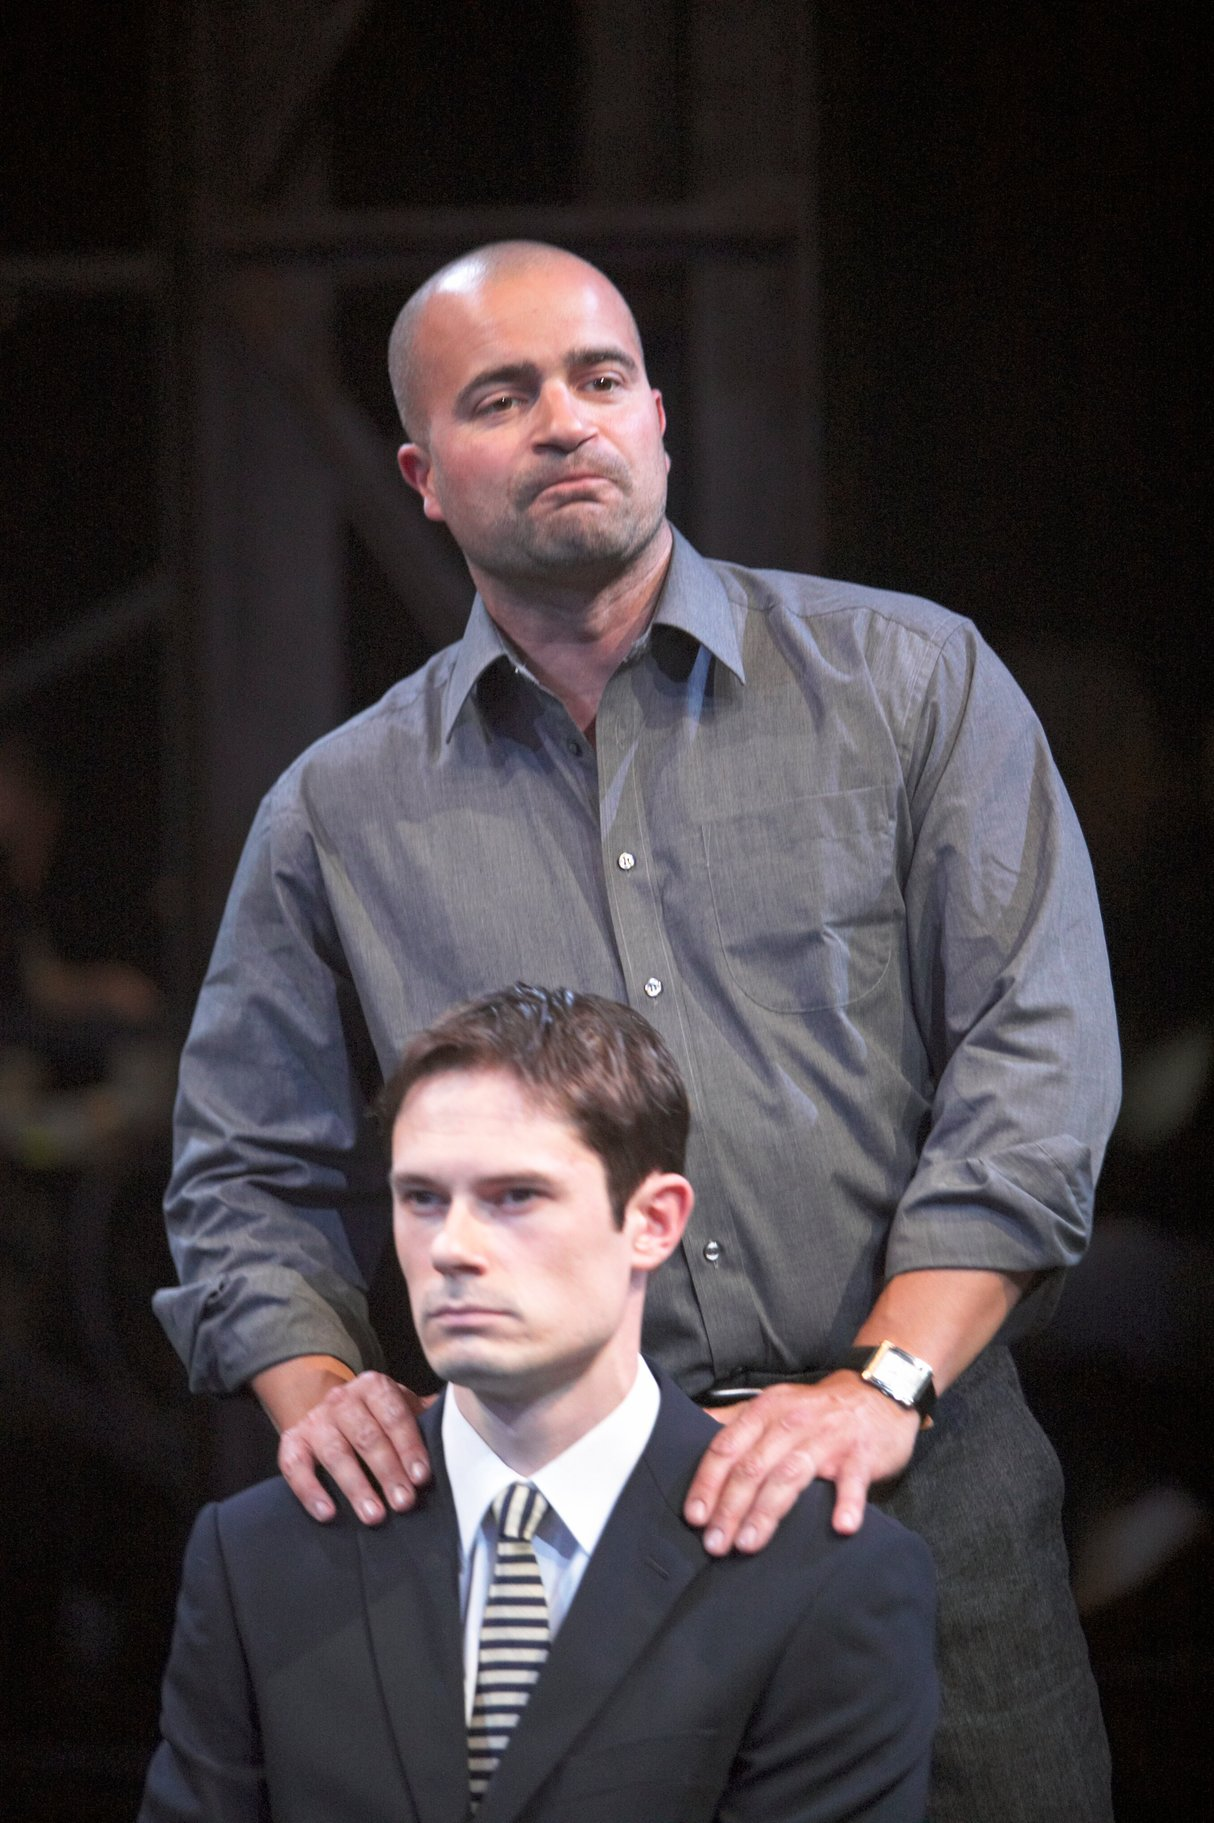 Octavius sitting, with Mark Antony standing behind with his hands on Octavius' shoulders